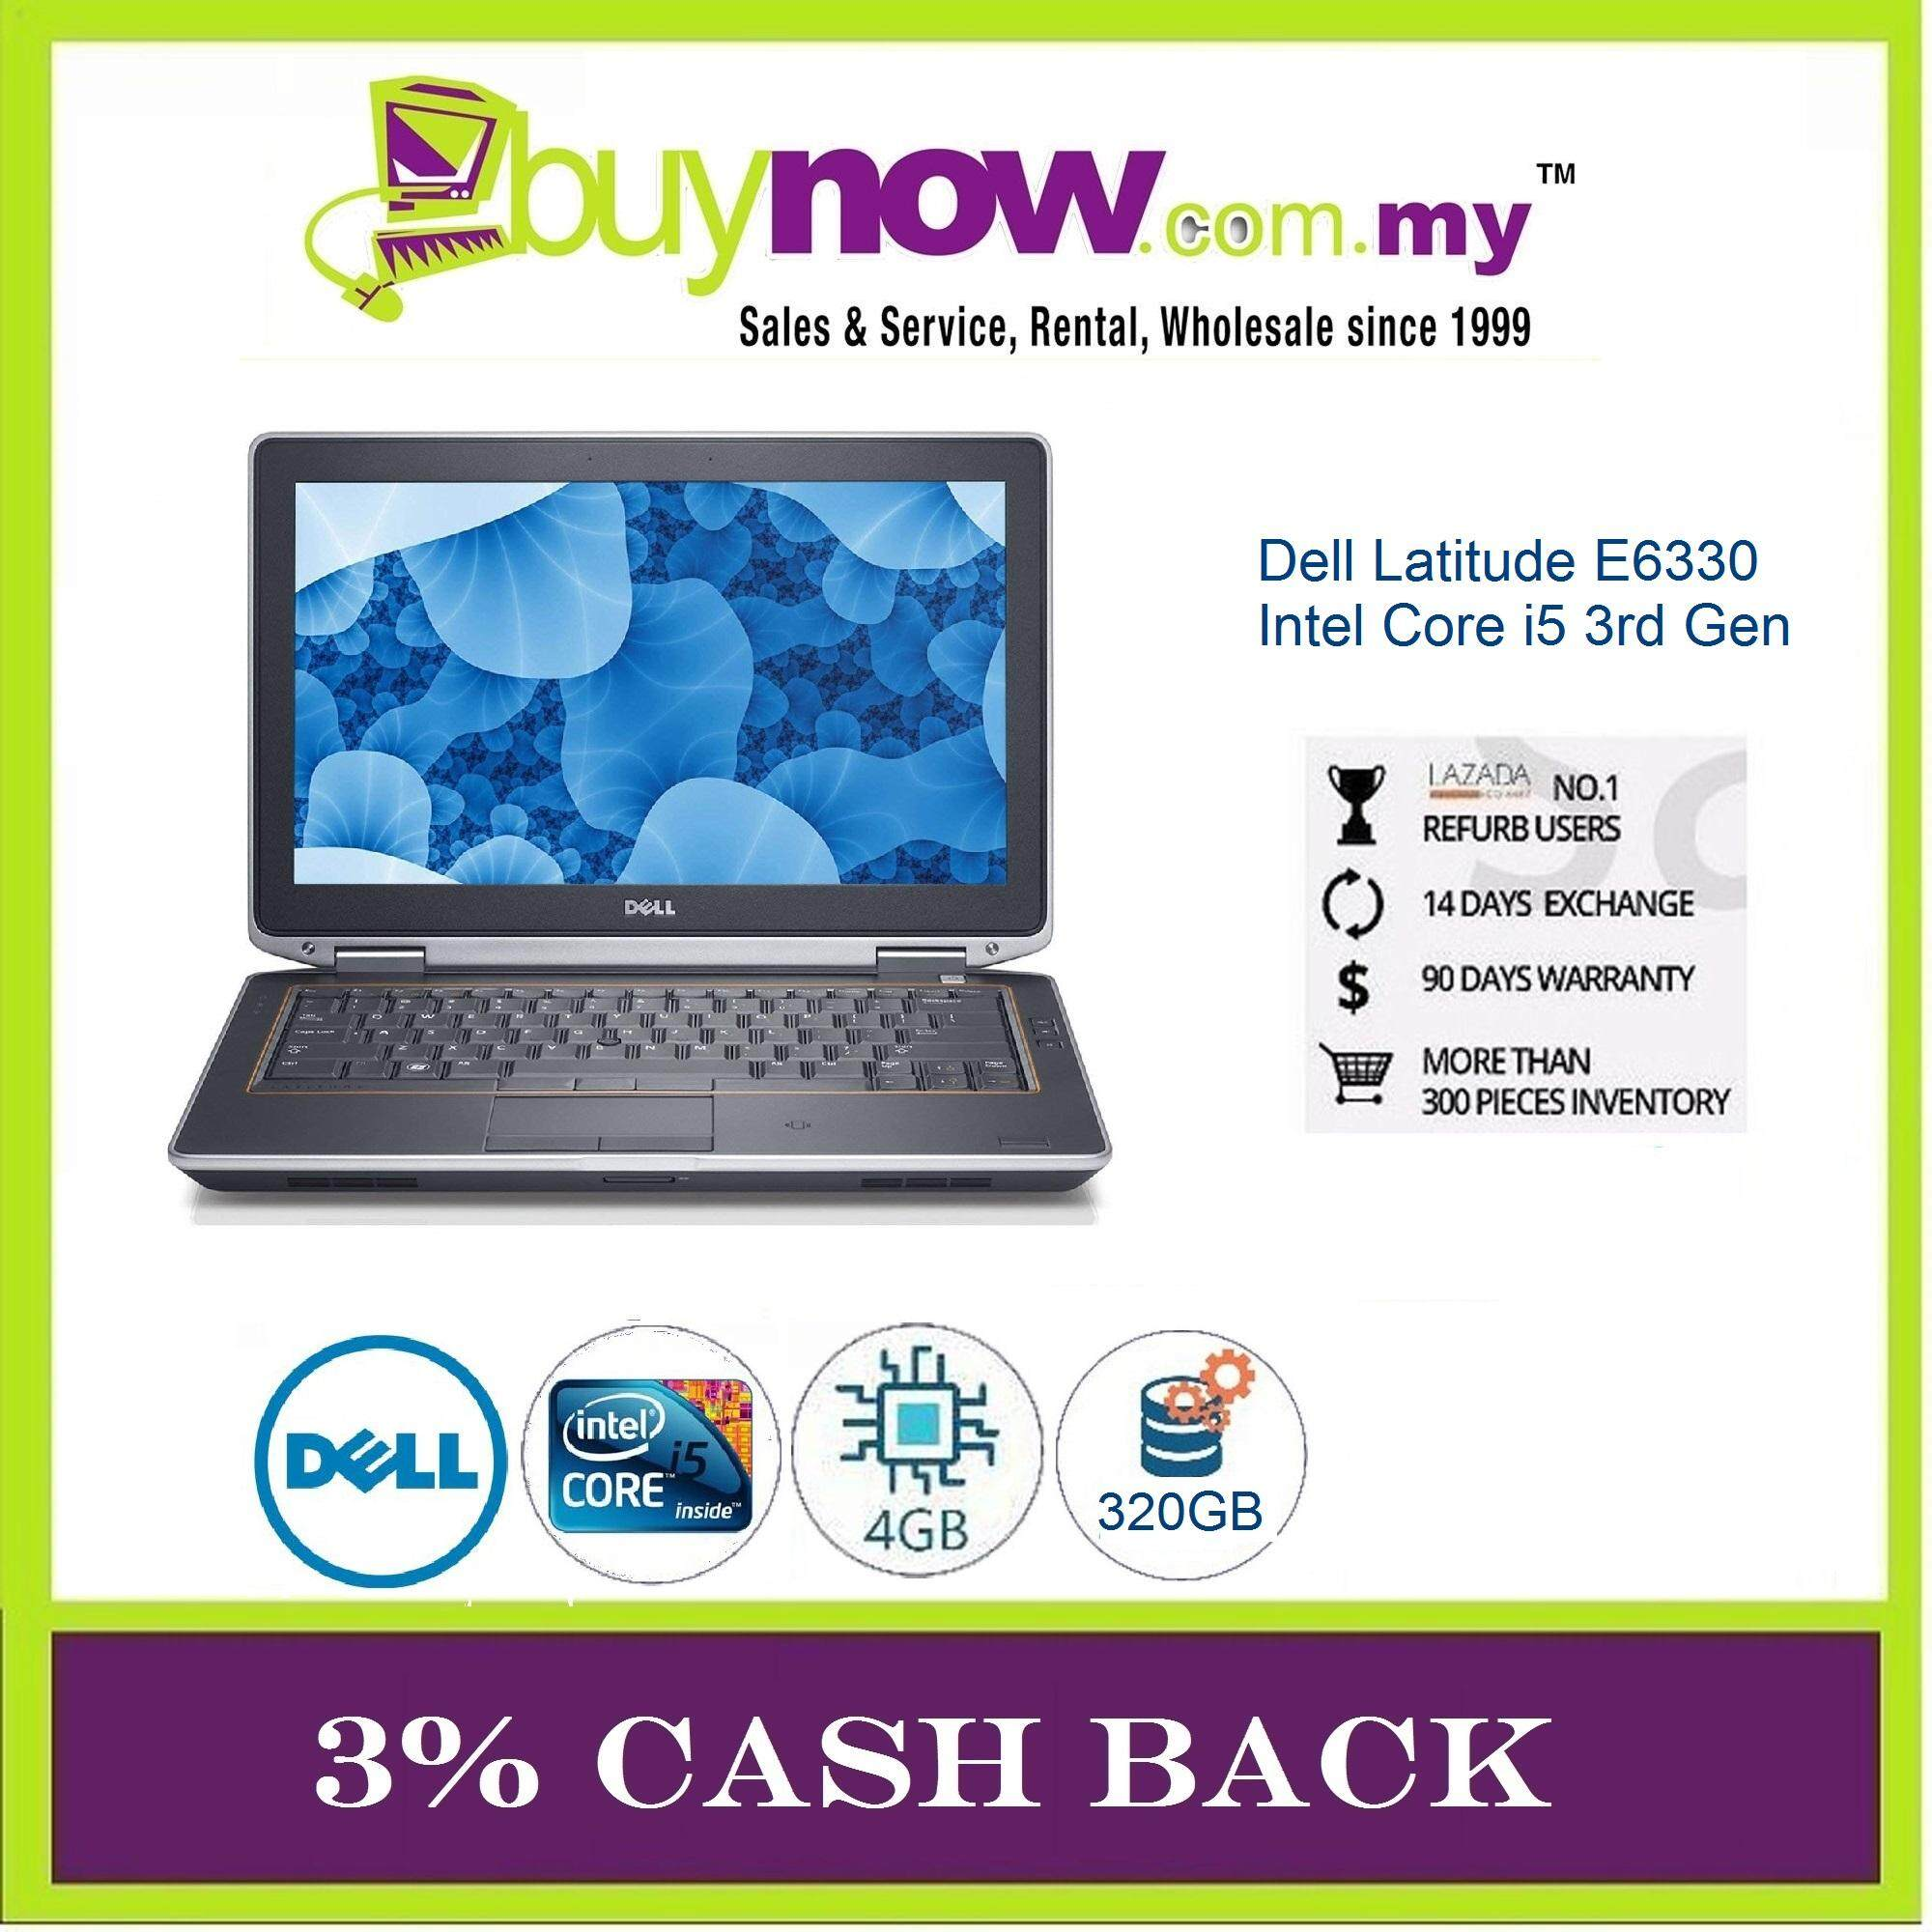 DELL LATITUDE E6330 Notebook Laptop 3rd Generation Intel Core i5 / 4GB RAM / 320GB HDD / Win OS / FREE NOTEBOOK BAG / 3 Months Warranty (Factory Refurbished) Malaysia